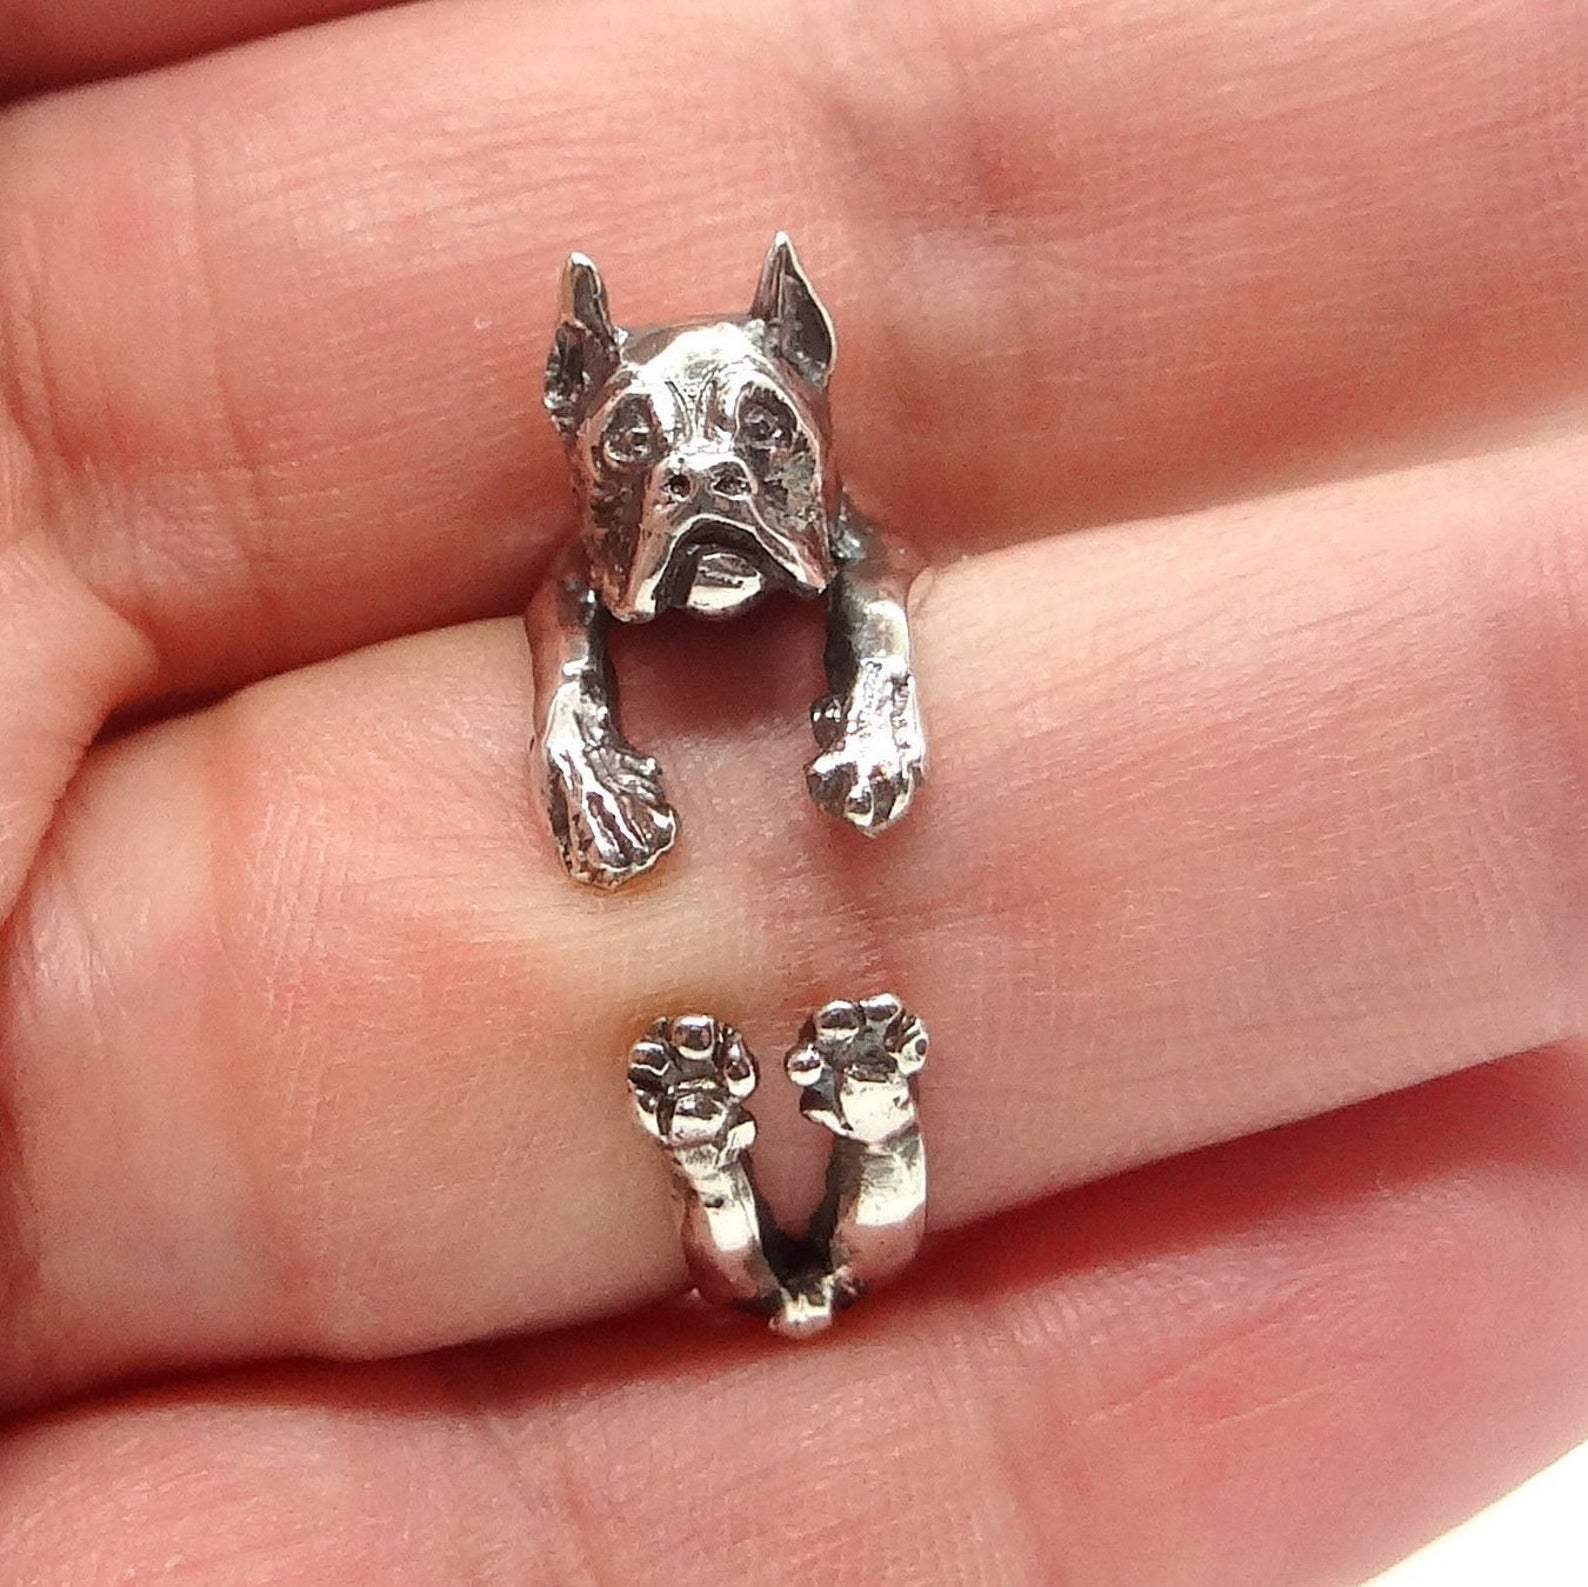 Boxer Dog Silver Ring via InmMotion on Etsy